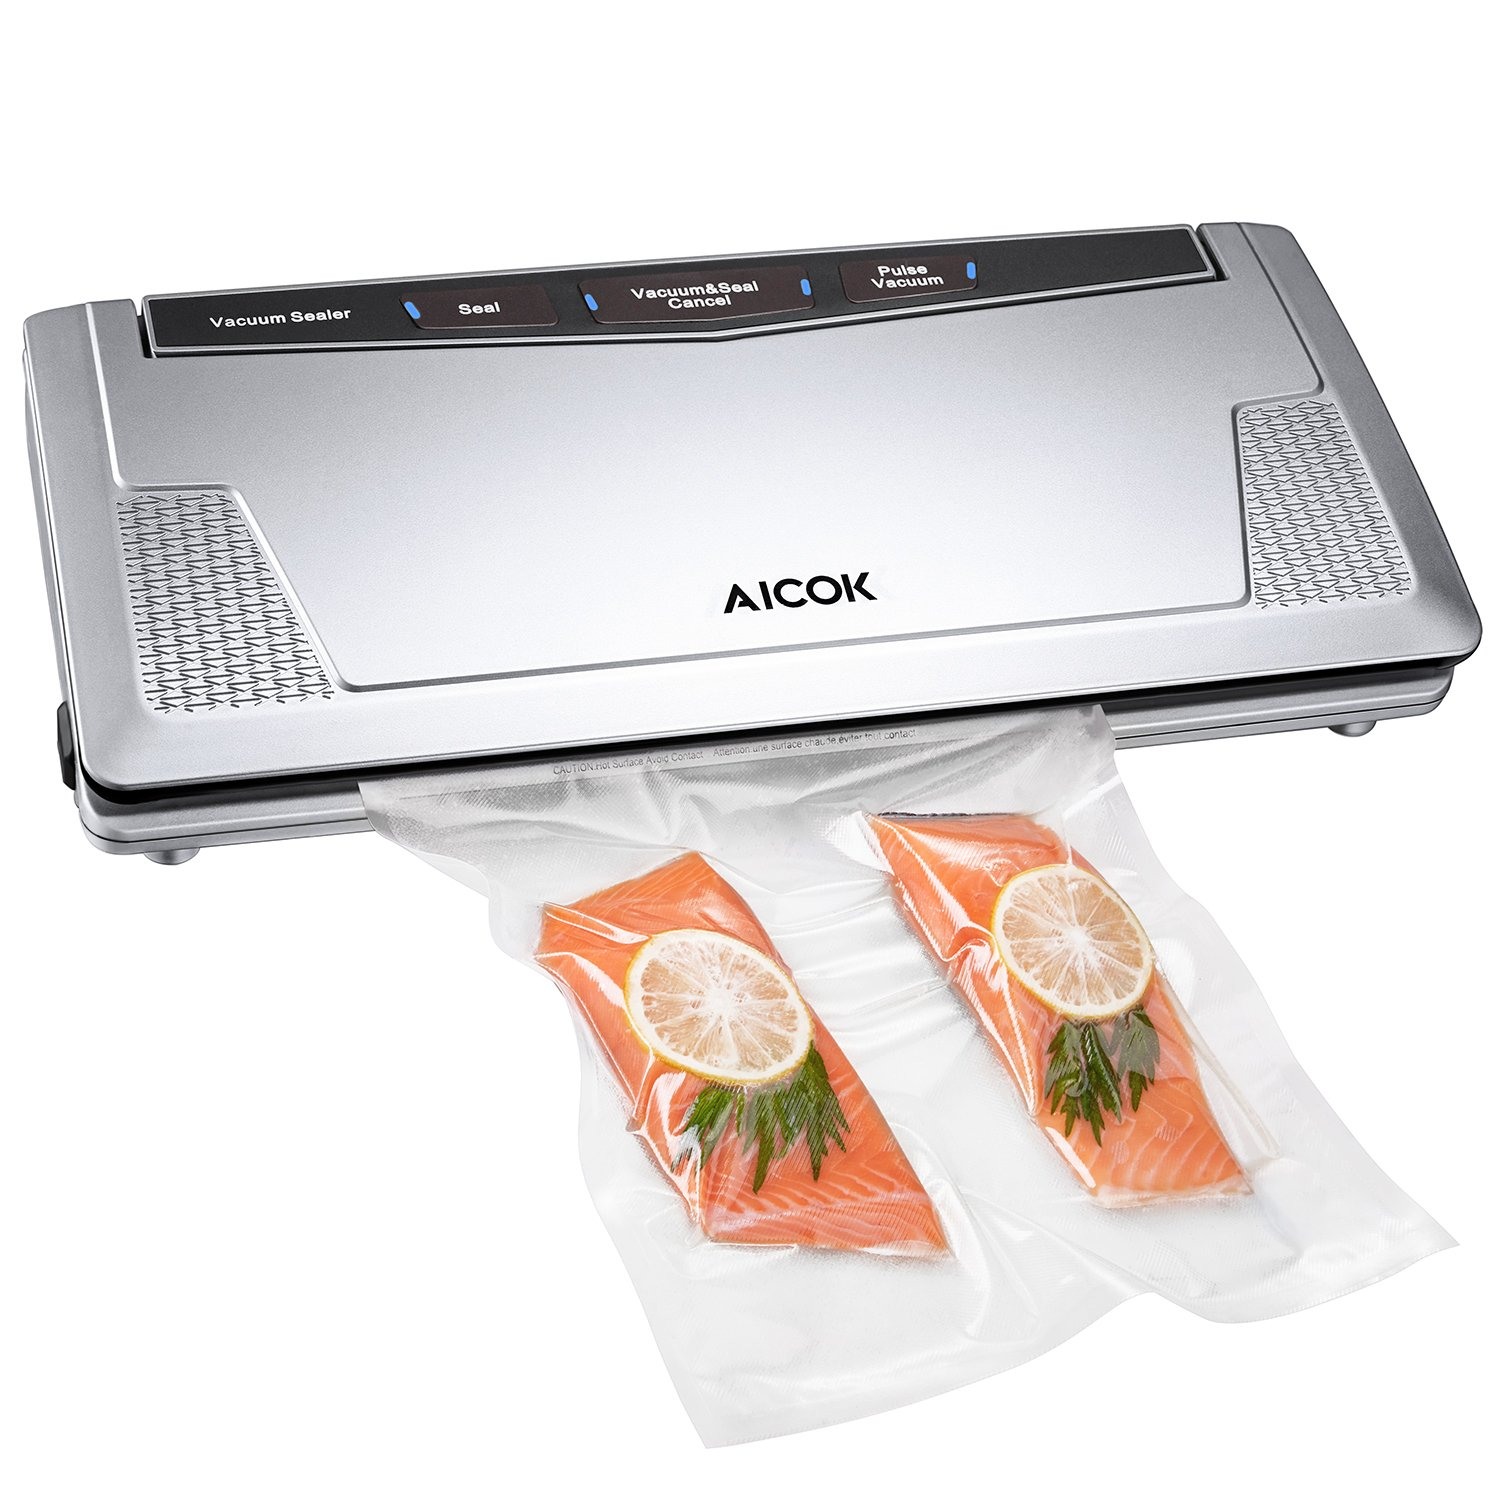 Amazon.com: Aicok Vacuum Sealer, Food Sealer With 10 Starter Bags For Food  Preservation, Automatic Vacuum Sealing System, Food Savers Vacuum Machine,  ...